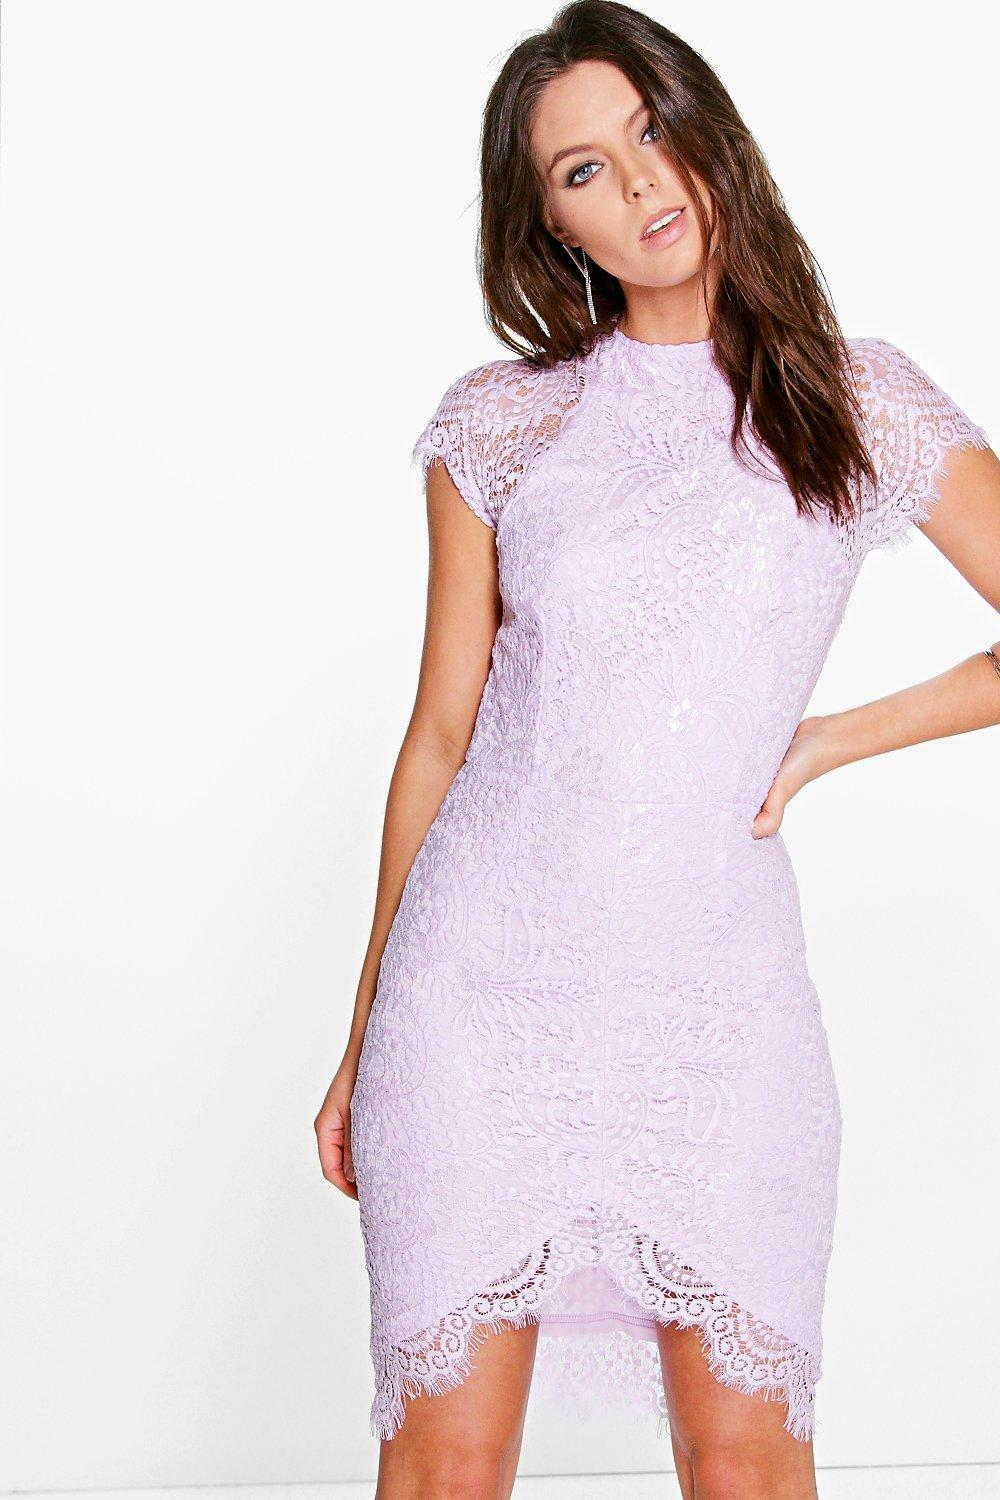 Leah Eyelash Lace Curved Hem Bodycon Dress Violet - sleeve style: capped; fit: tight; pattern: plain; style: bodycon; predominant colour: ivory/cream; occasions: evening; length: just above the knee; fibres: polyester/polyamide - 100%; neckline: crew; sleeve length: short sleeve; pattern type: fabric; texture group: other - light to midweight; embellishment: lace; season: s/s 2016; wardrobe: event